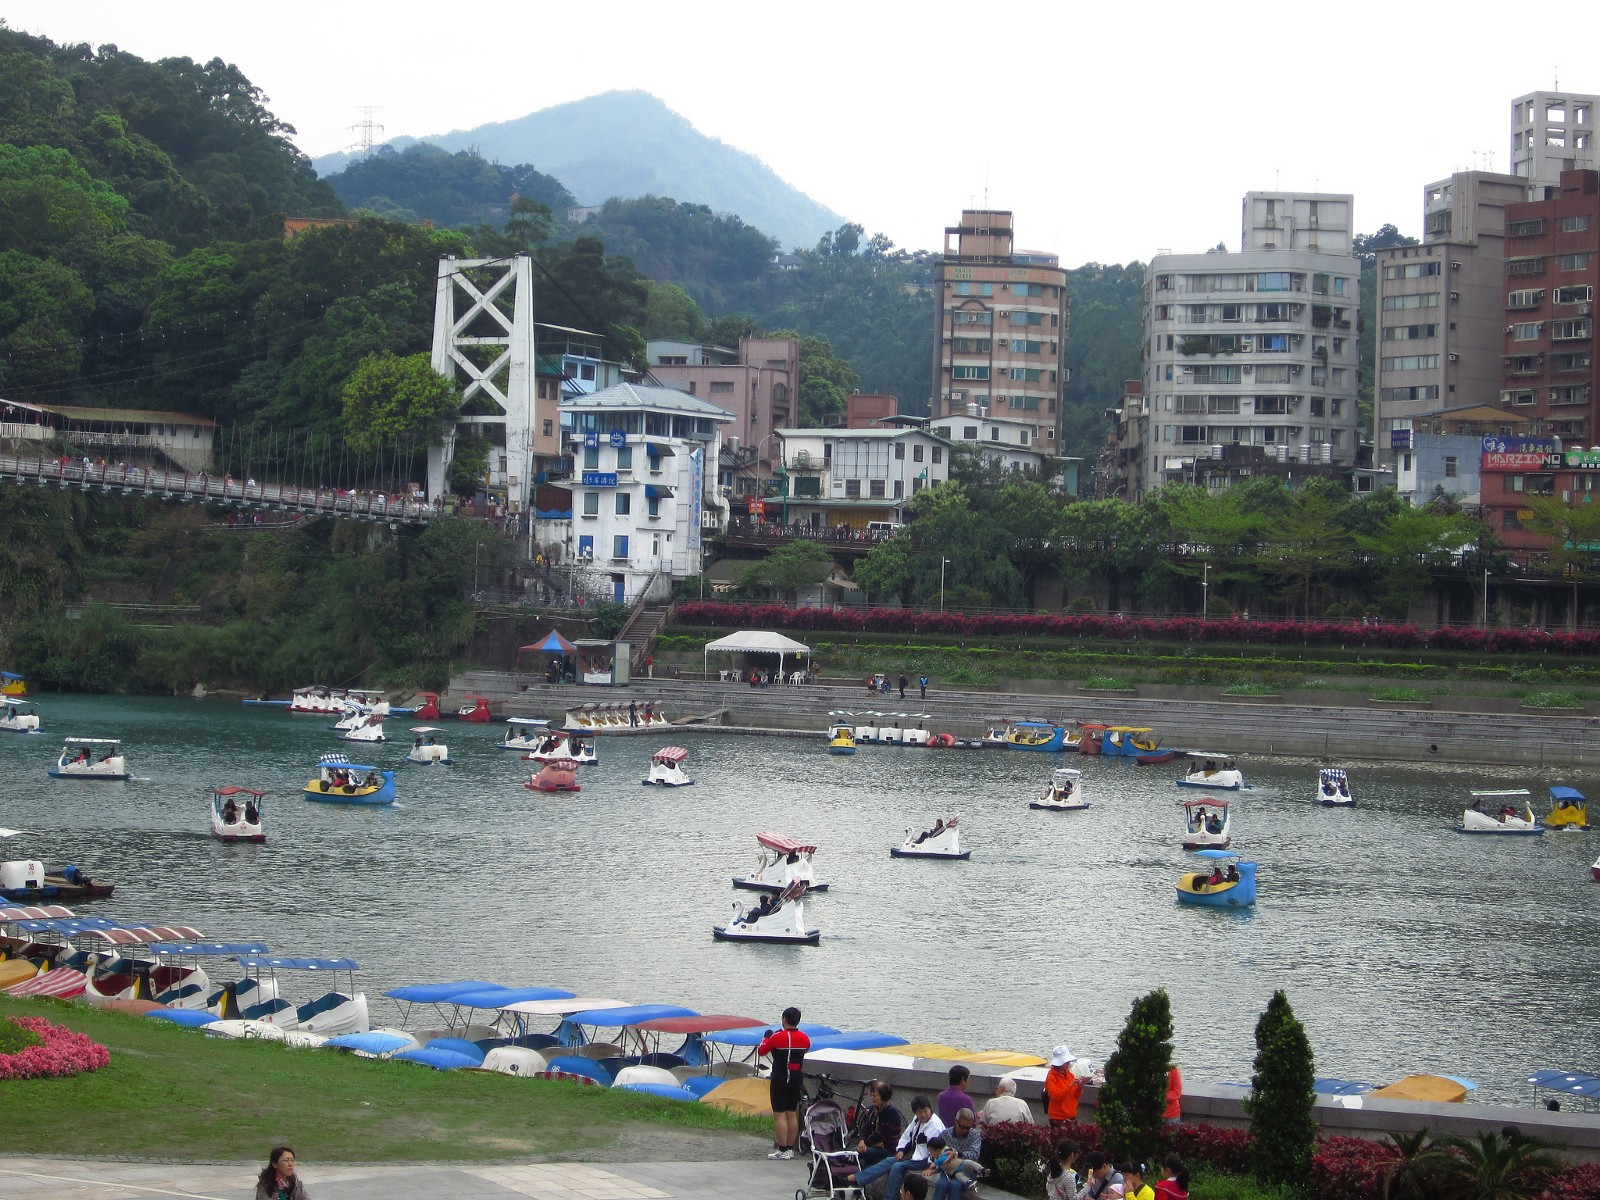 Visitors paddling along the river at Bitan Scenic Area